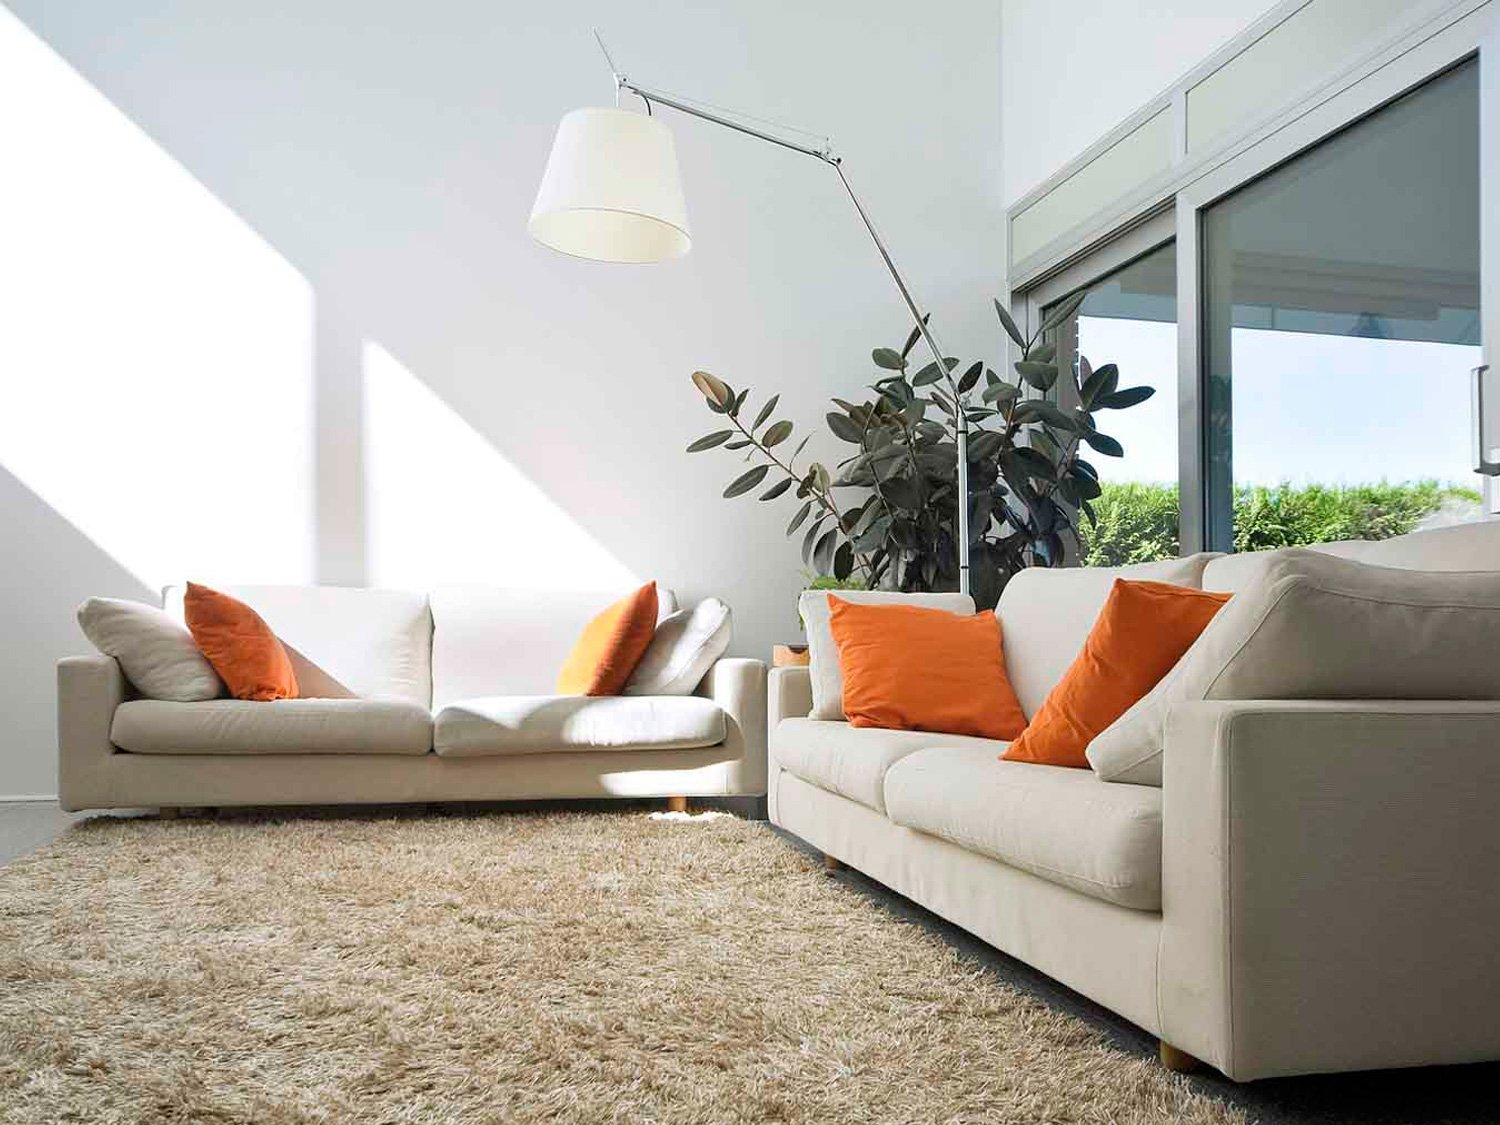 View of the upholstery sofa set